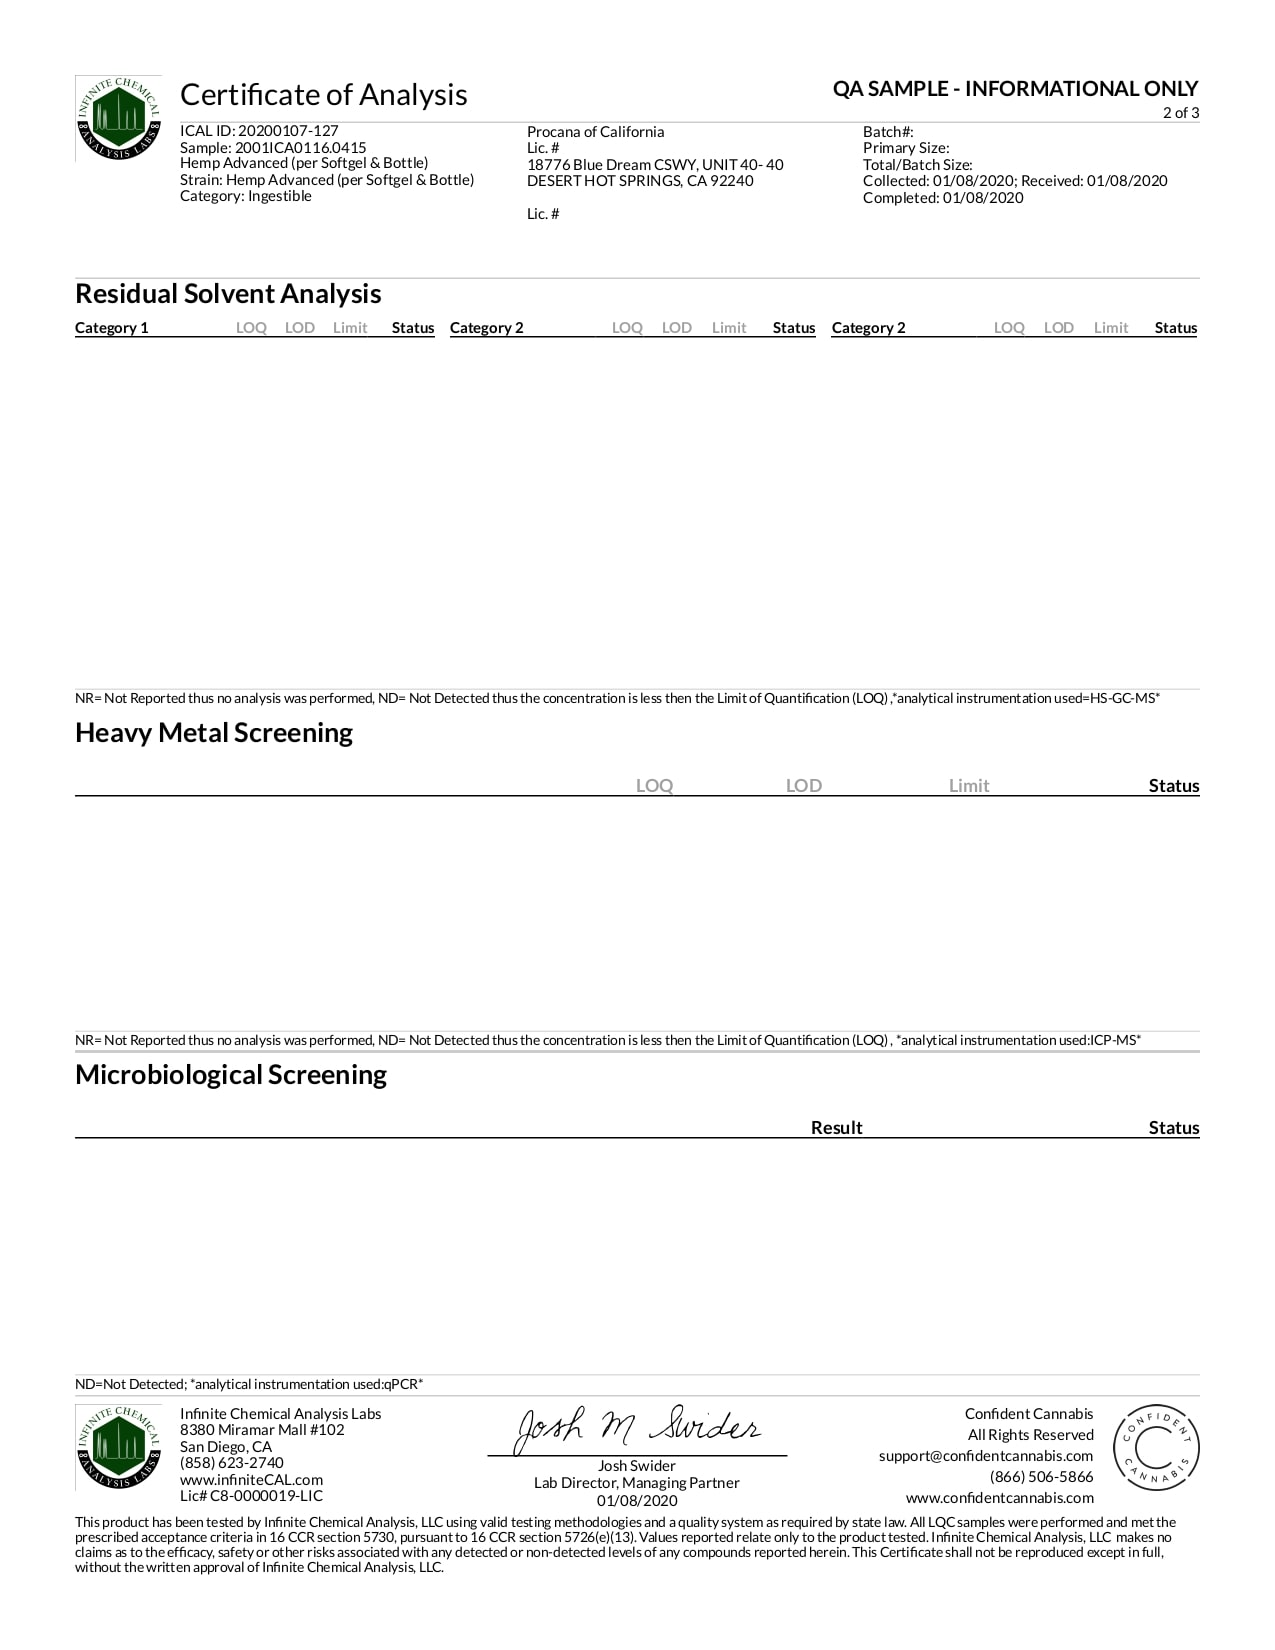 Procana CBD Hemp Advanced Softgels 150mg Lab Report